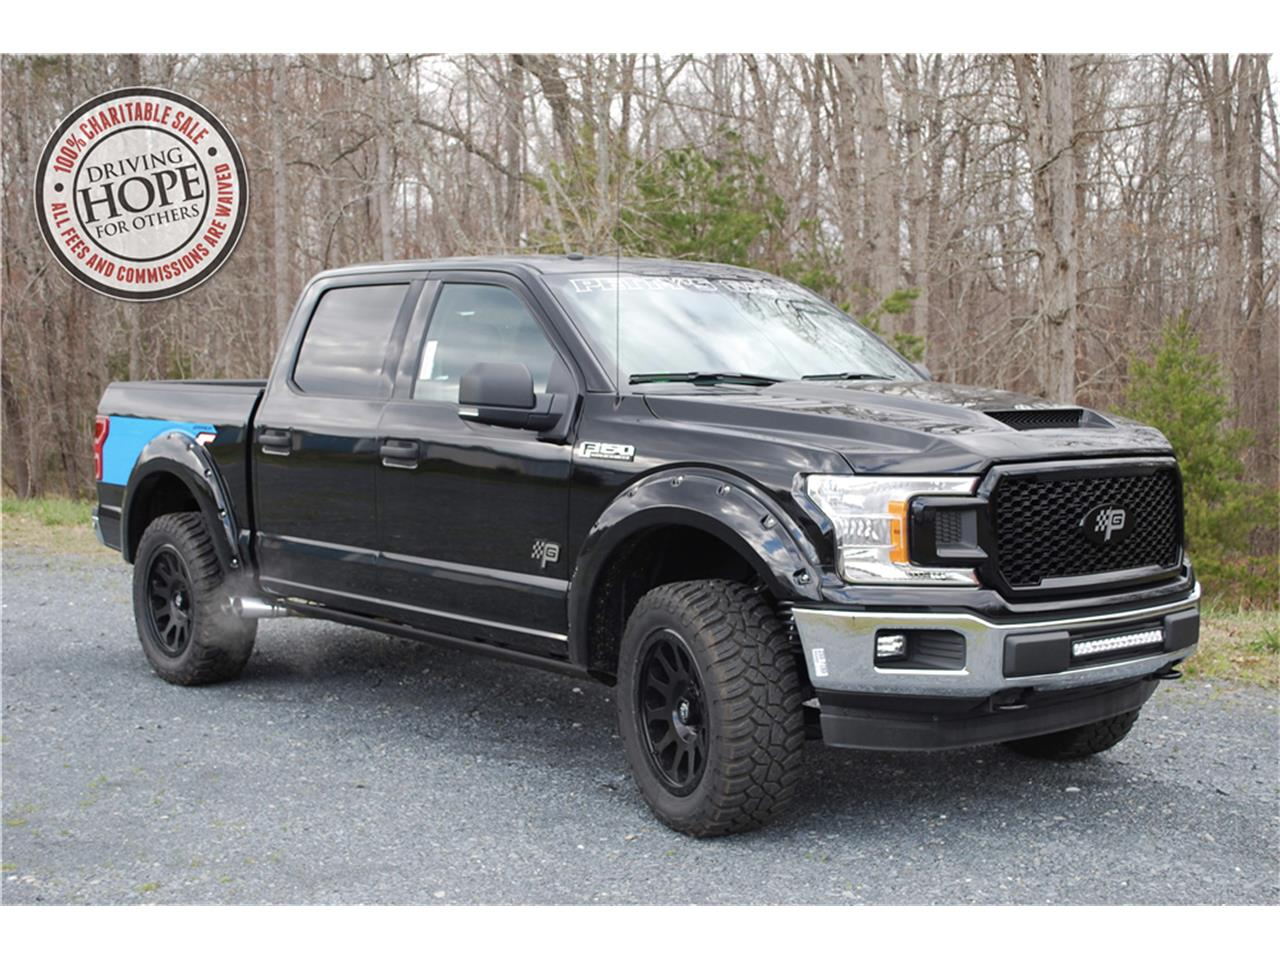 Ford F150 For Sale Las Vegas >> 2018 Ford F150 For Sale Classiccars Com Cc 1142824